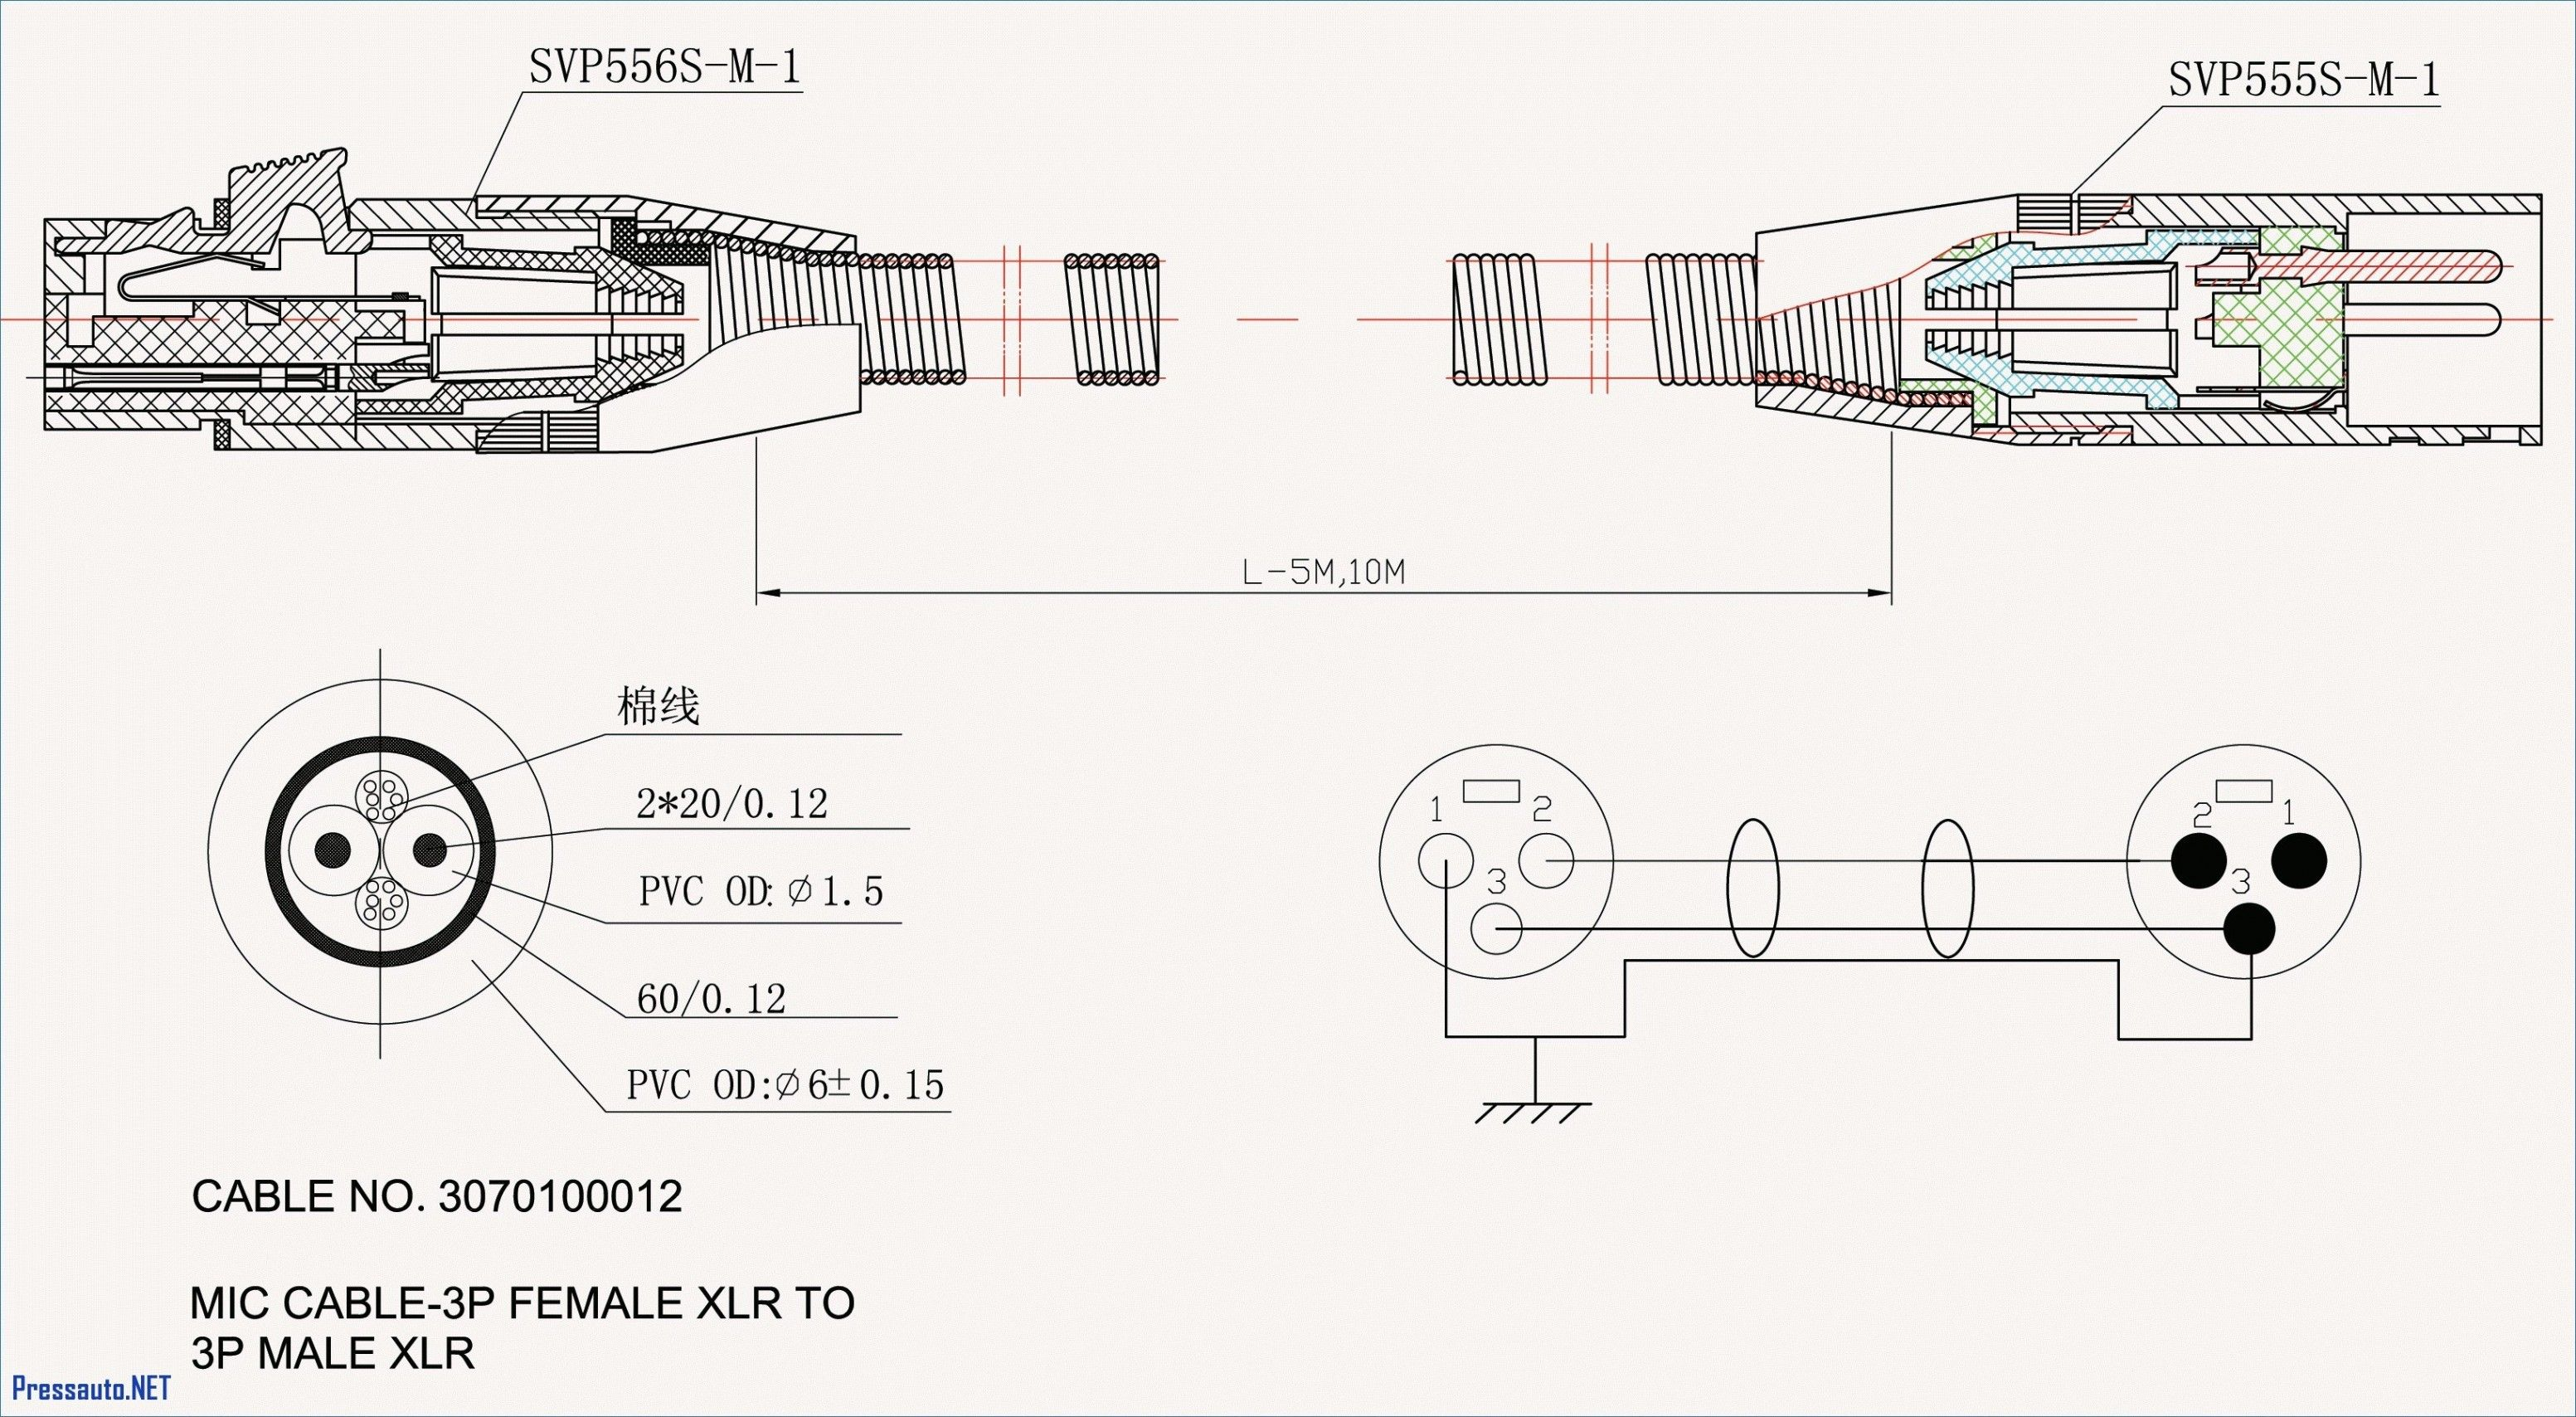 4 Prong Dryer Outlet Wiring Diagram Best Of In 2020 Garage Design Outlet Wiring Diagram